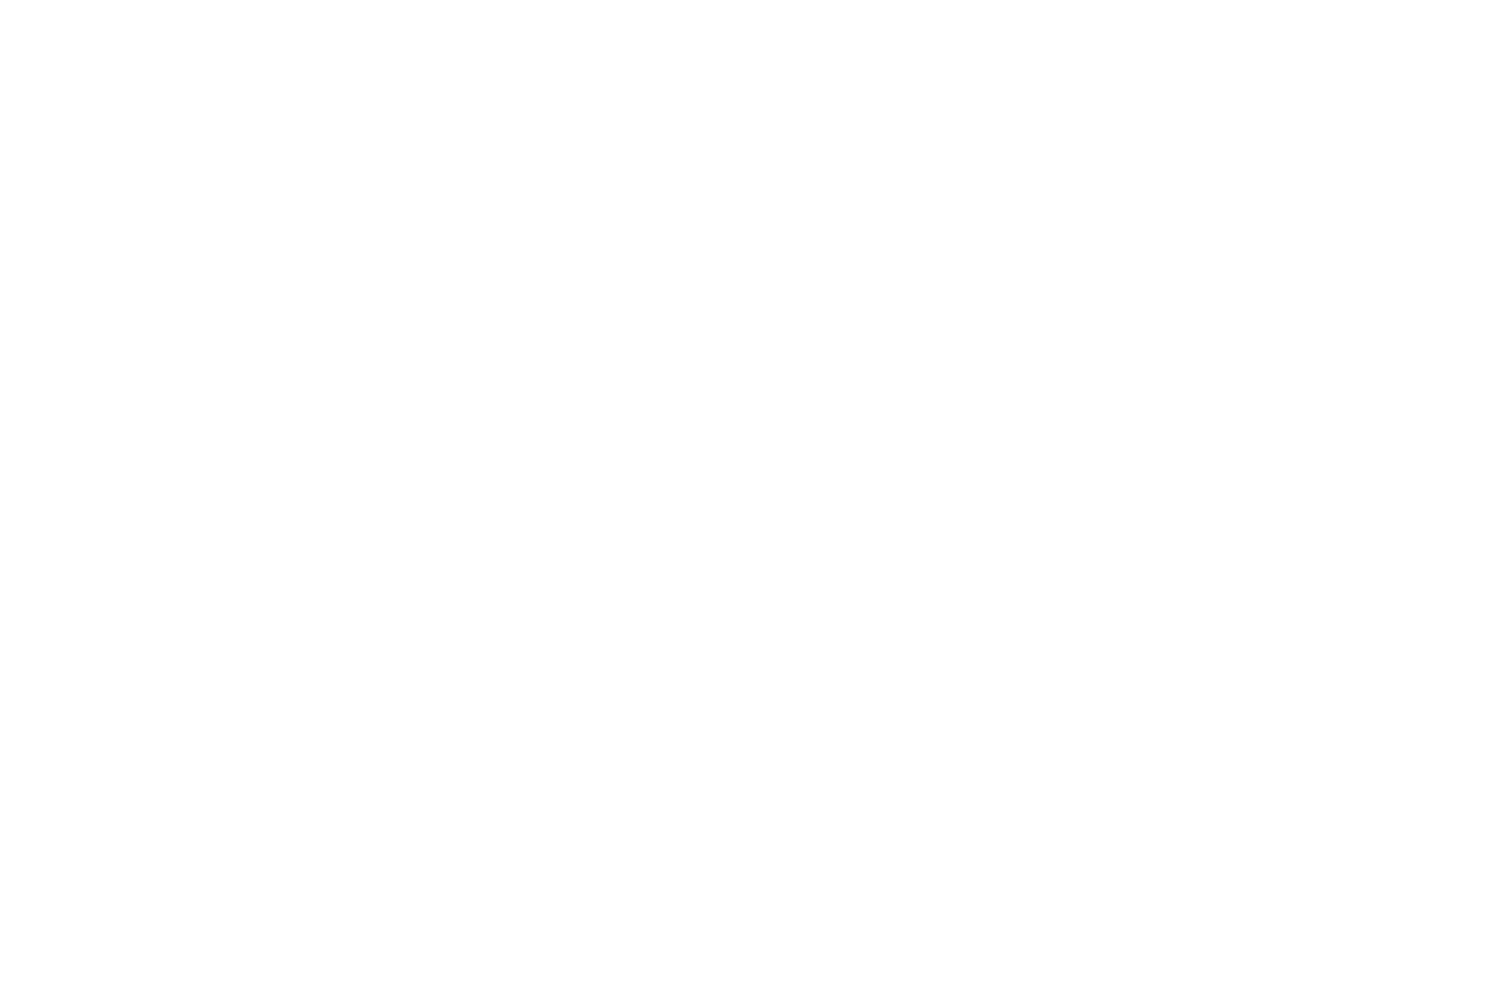 Origami pattern background